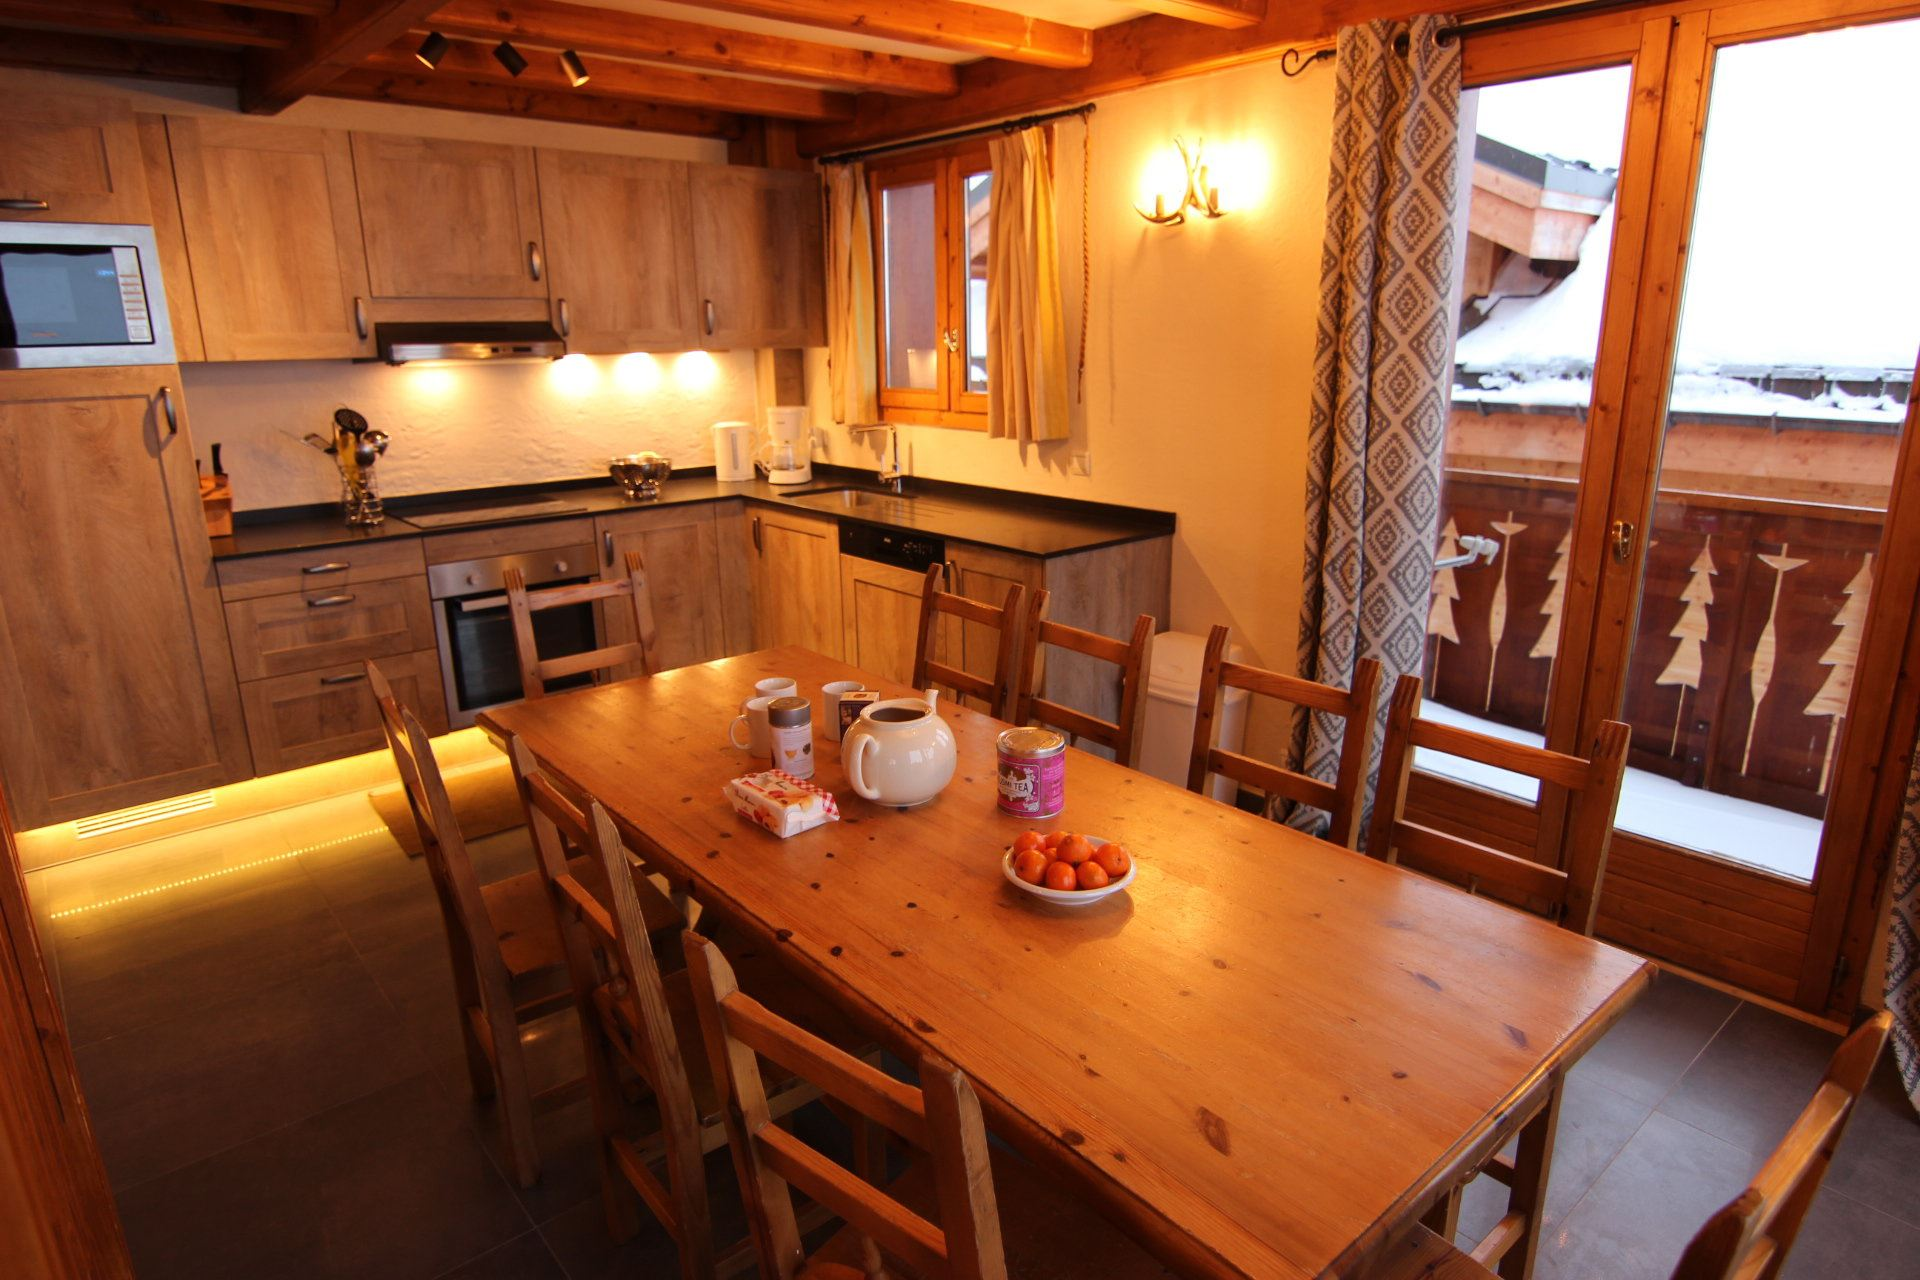 BOUQUETIN 4 / APARTMENT 5 ROOMS DUPLEX 8 PERSONS - 3 SILVER SNOWFLAKES - VTI